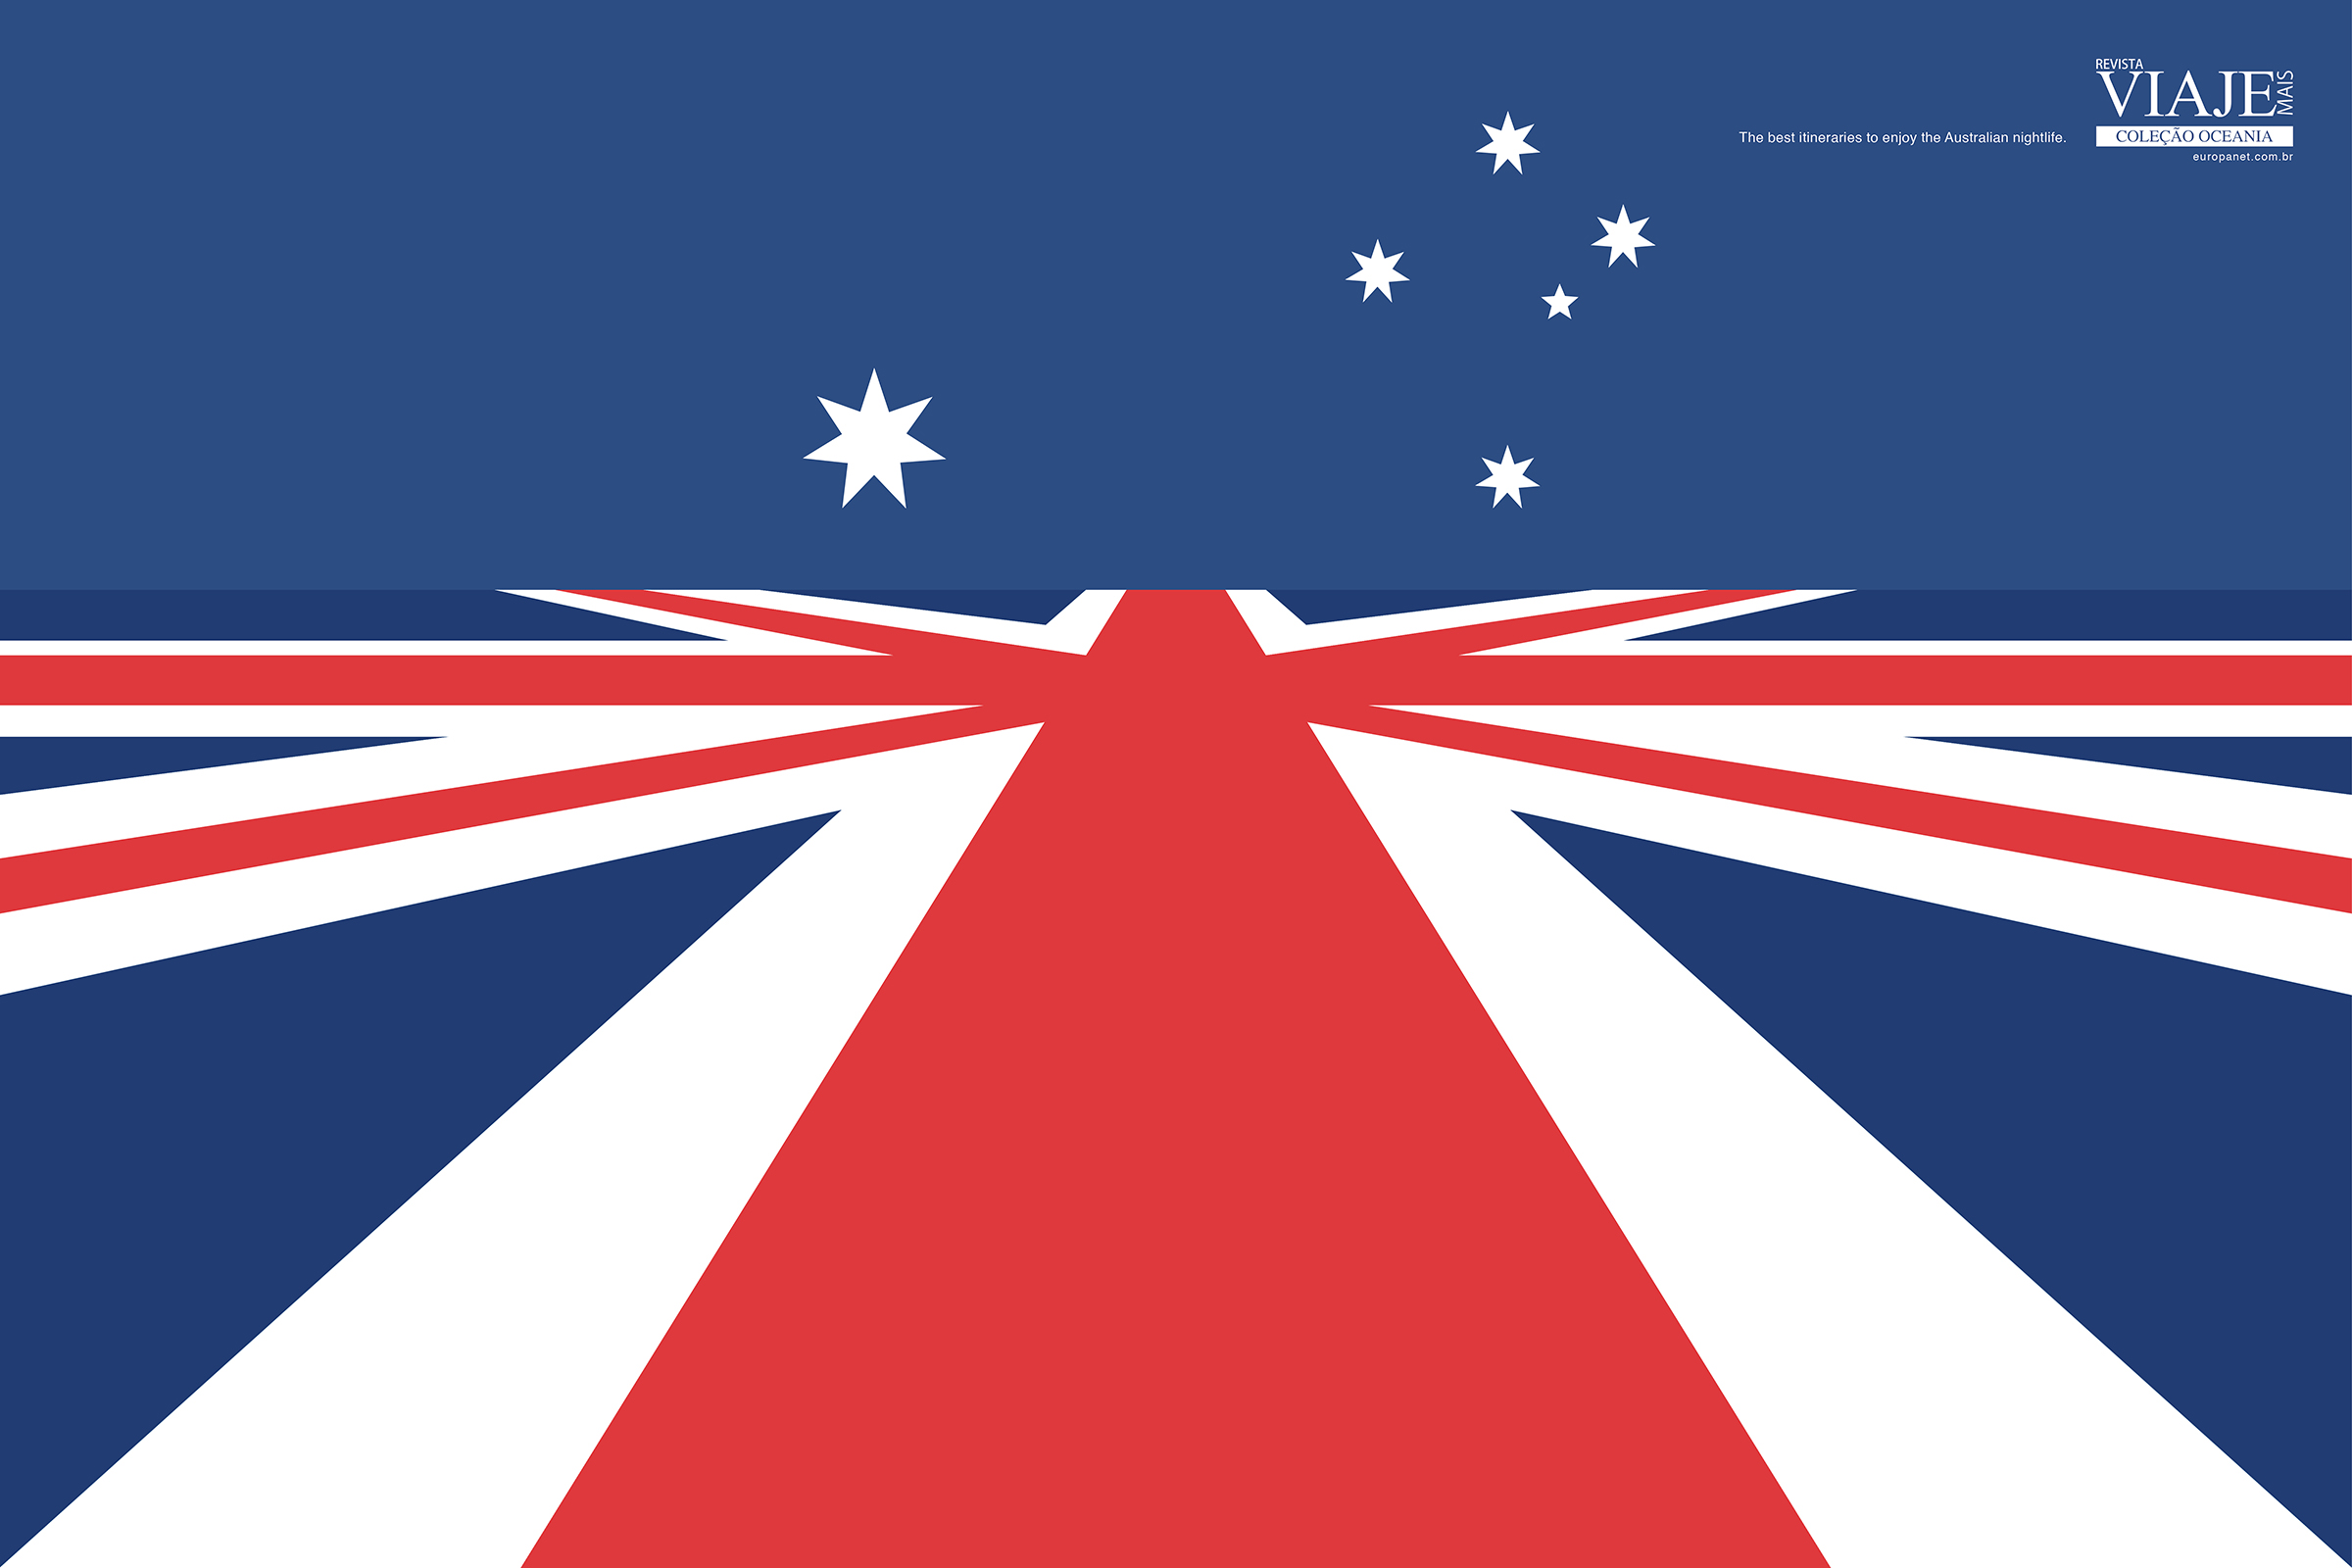 The 29 >> Editora Europa: Flags Norway, Flags Chile, Flags Argentina, Flags USA, Flags Australia - Adeevee